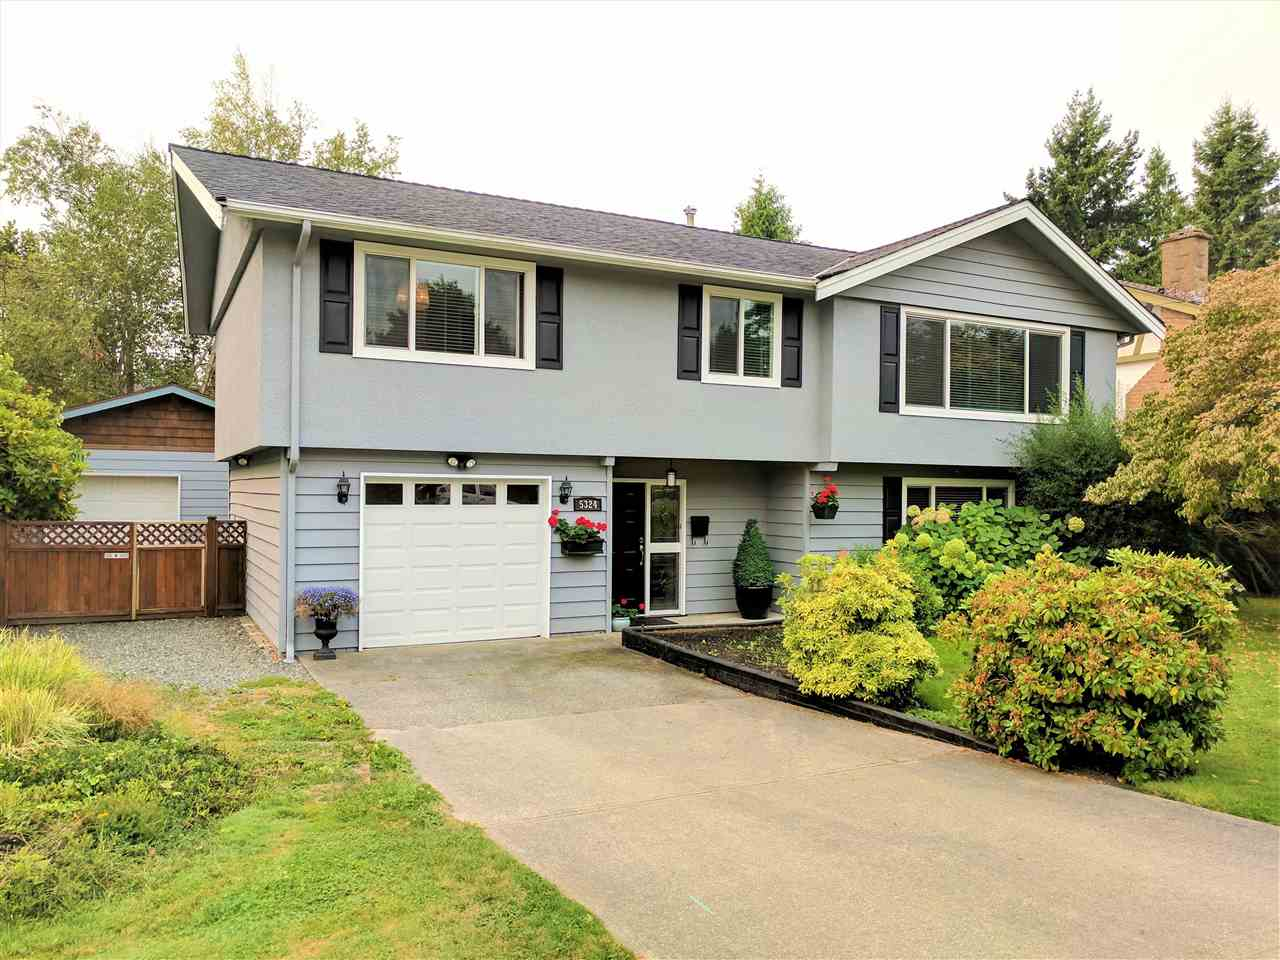 Lovely 4 bdrm family home located on a 7000 sqft lot in one Tsawwassen's most desirable neighbourhoods. This 2000 sqft home has been professionally redone & features a bright, modern new kitchen that overlooks a large south-facing deck & backyard, updated bathrooms, new roof, custom built-in shelving units, new hot water tank & windows, custom blinds, modern lighting fixtures, fresh paint inside and out plus beautifully refinished original hardwood floors. Perfect for a young, growing family this home is immaculate & move-in ready. In addition to the single car garage, this home also features a bonus 600 sqft detached garage w/ 220 wiring for the hobbiest, craftsman or for additional storage. Just a short walk to Pebble Hill Elementary & Diefenbaker Park...excellent home - don't wait!